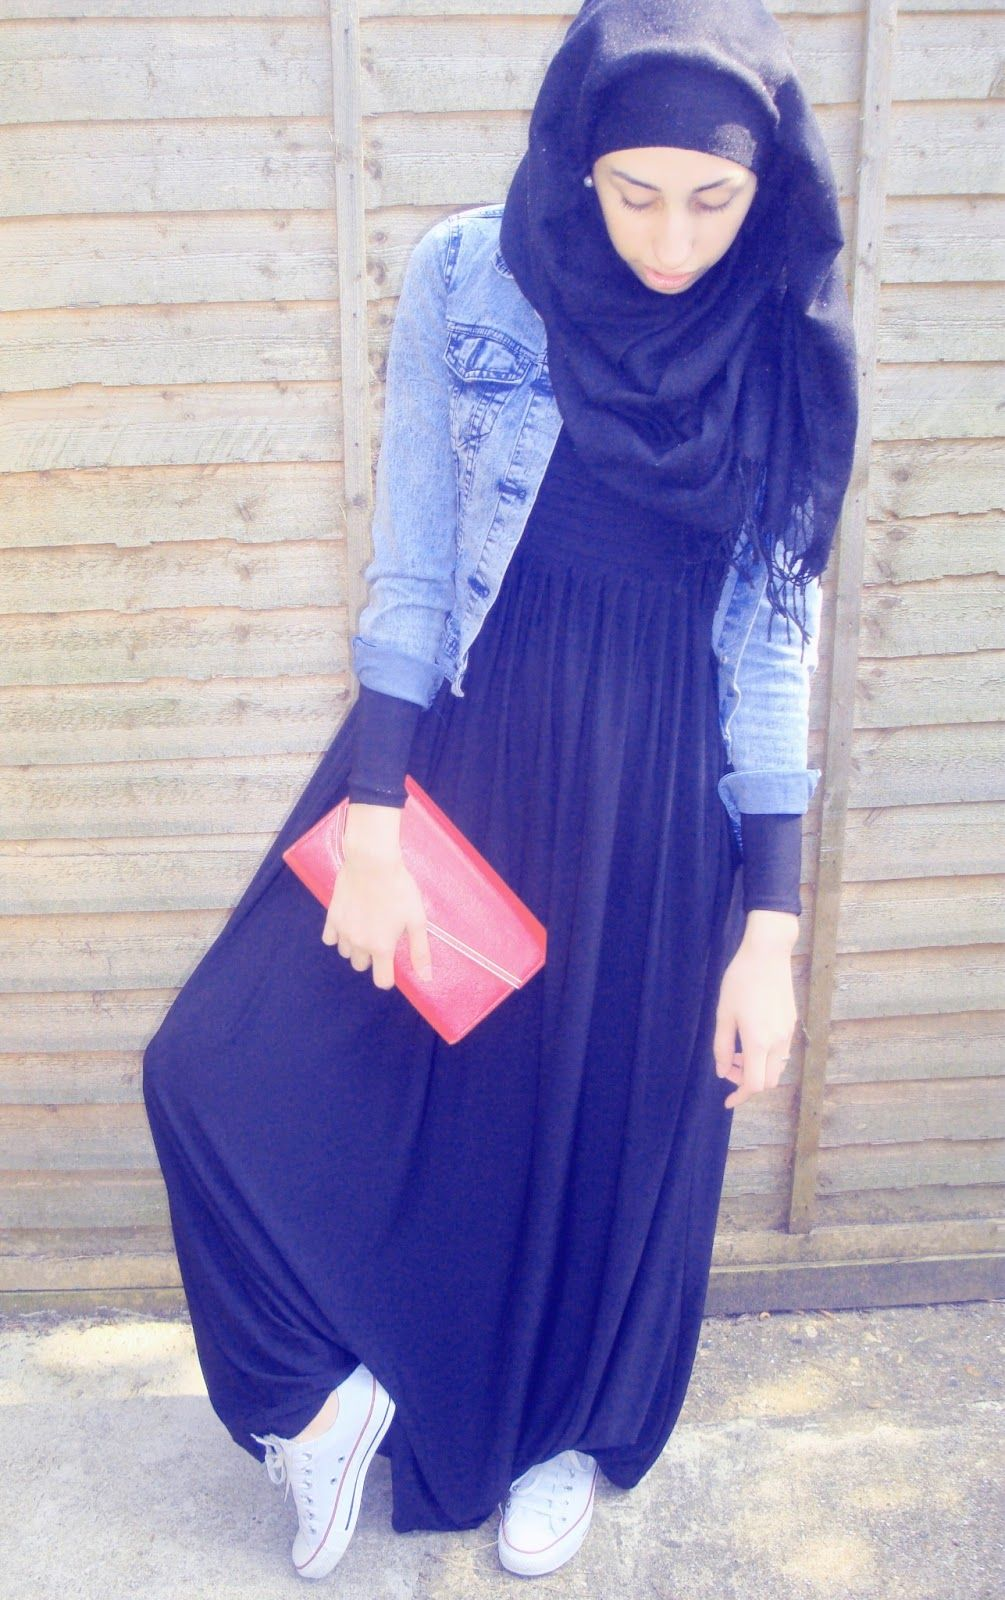 Leather jacket hijab - Layer A Denim Jacket Over Your Abaya Add A Pashmina Hijab And A Pair Of Sneakers For Campus